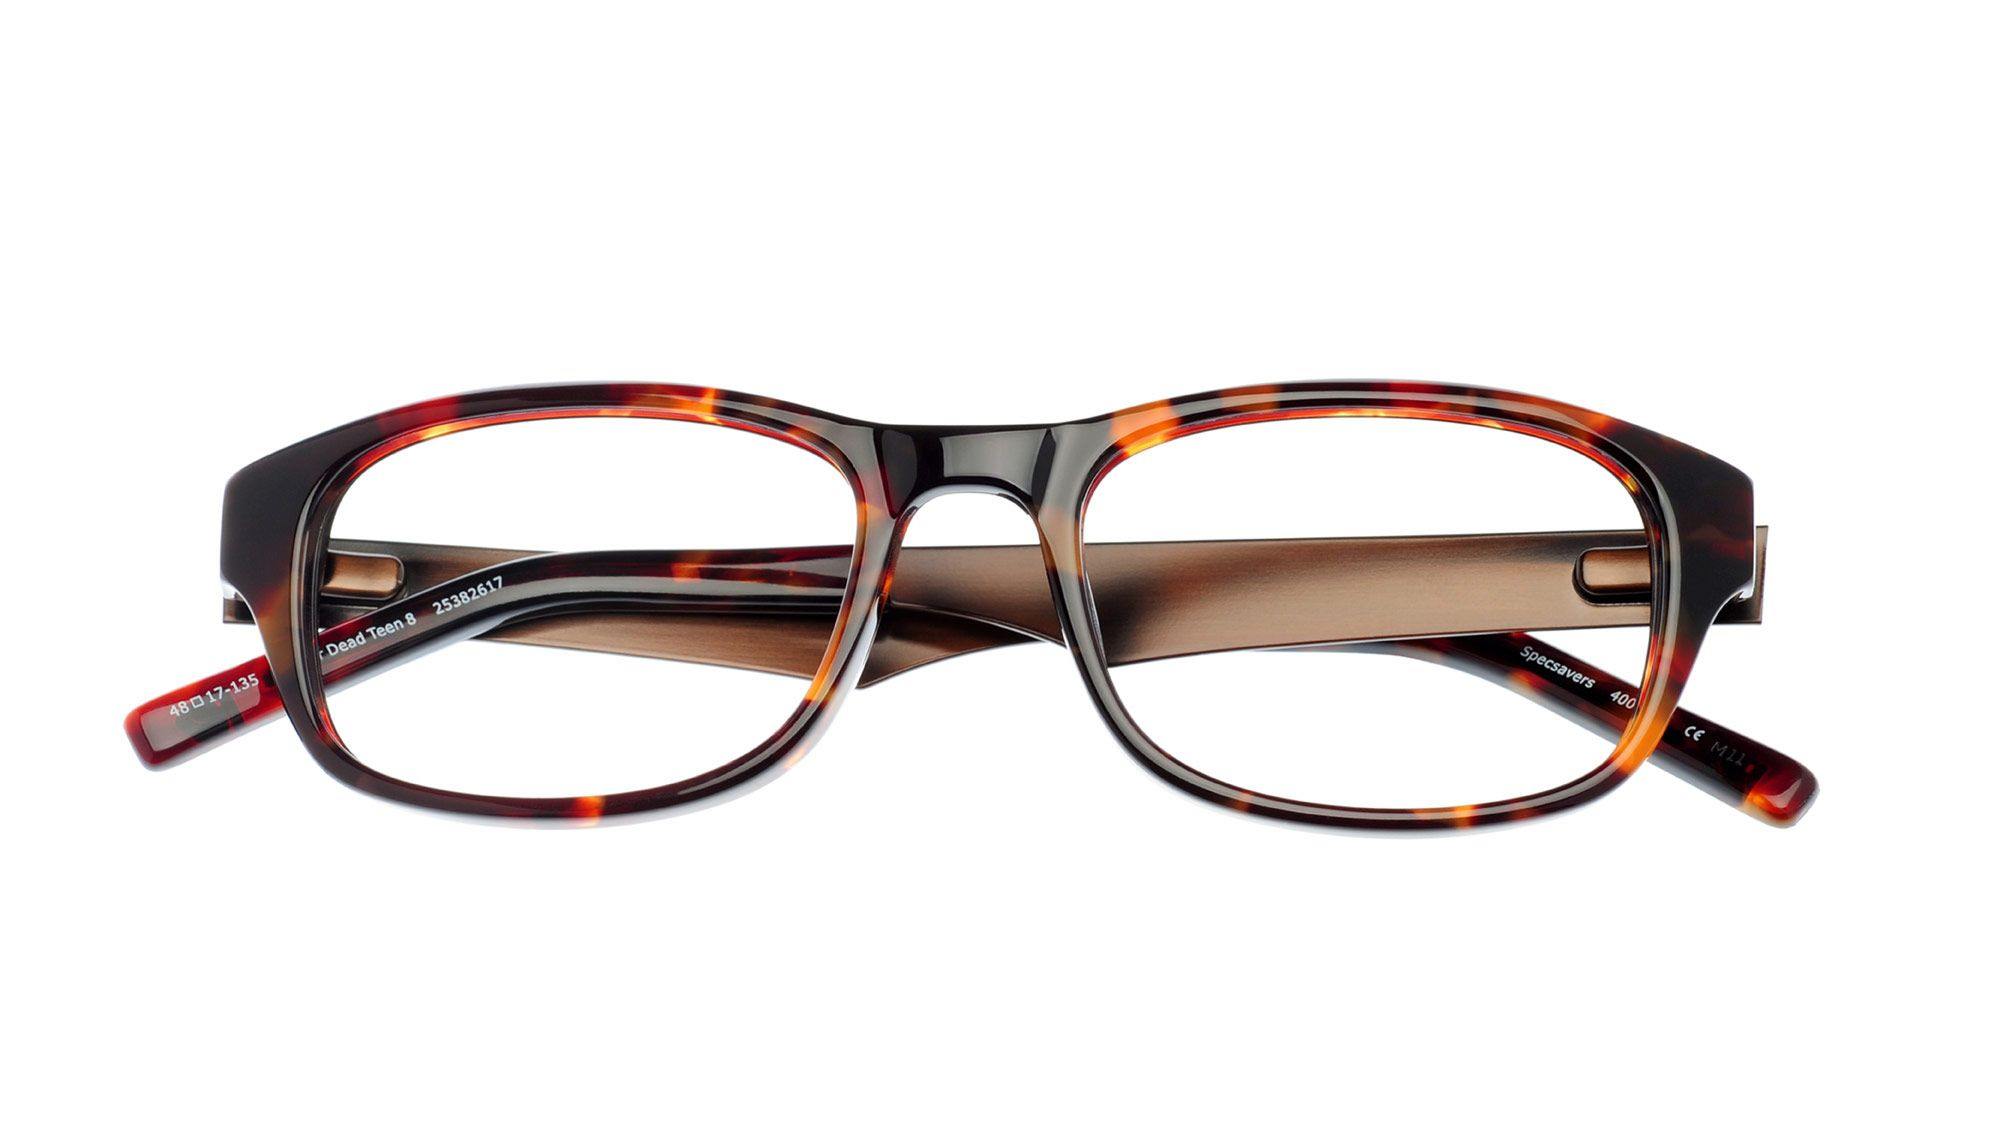 045ddf5350b0 RED OR DEAD TEEN 08 Glasses by Red or Dead